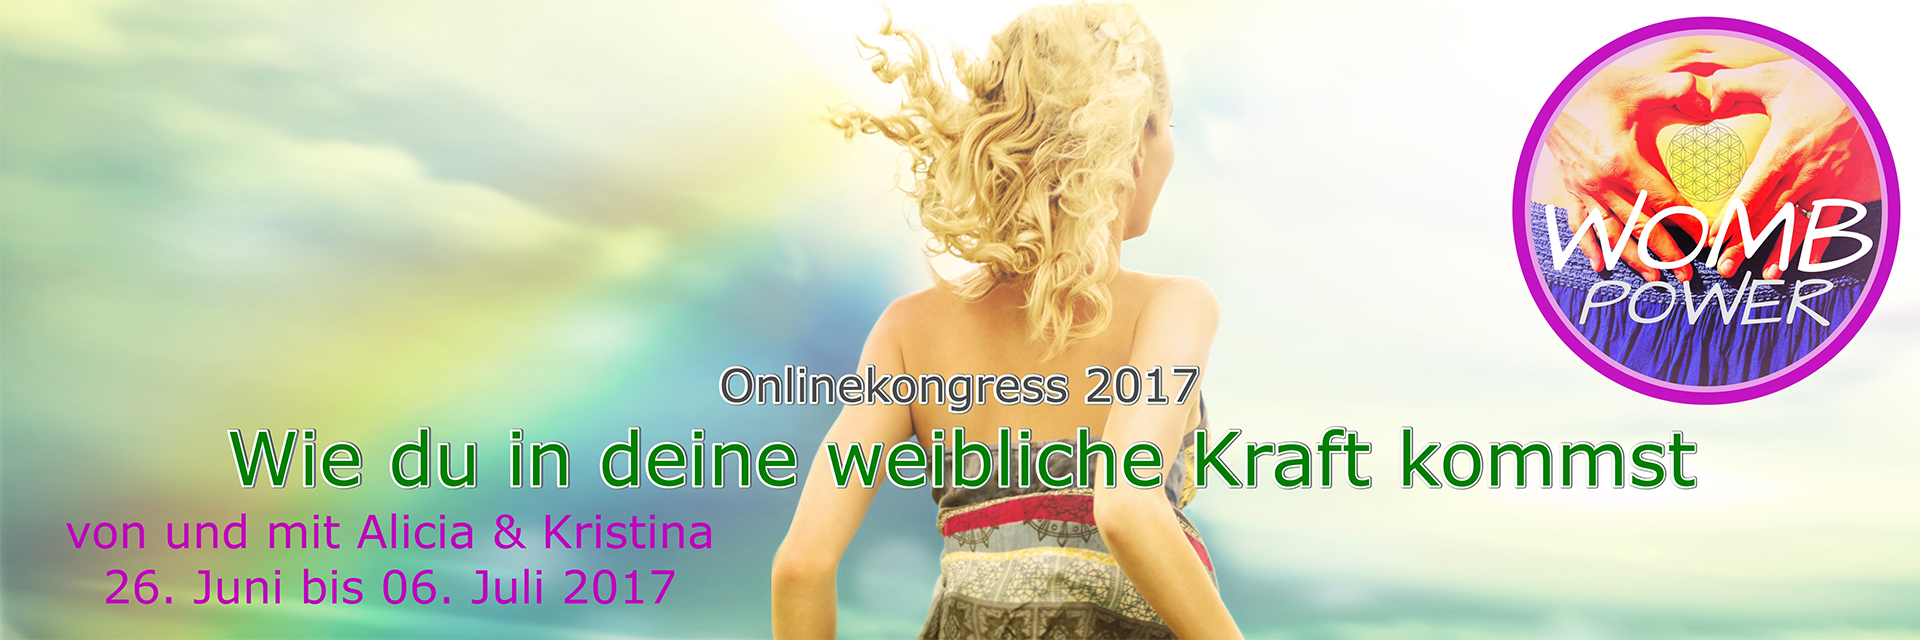 womb-power-kongress-header-banner